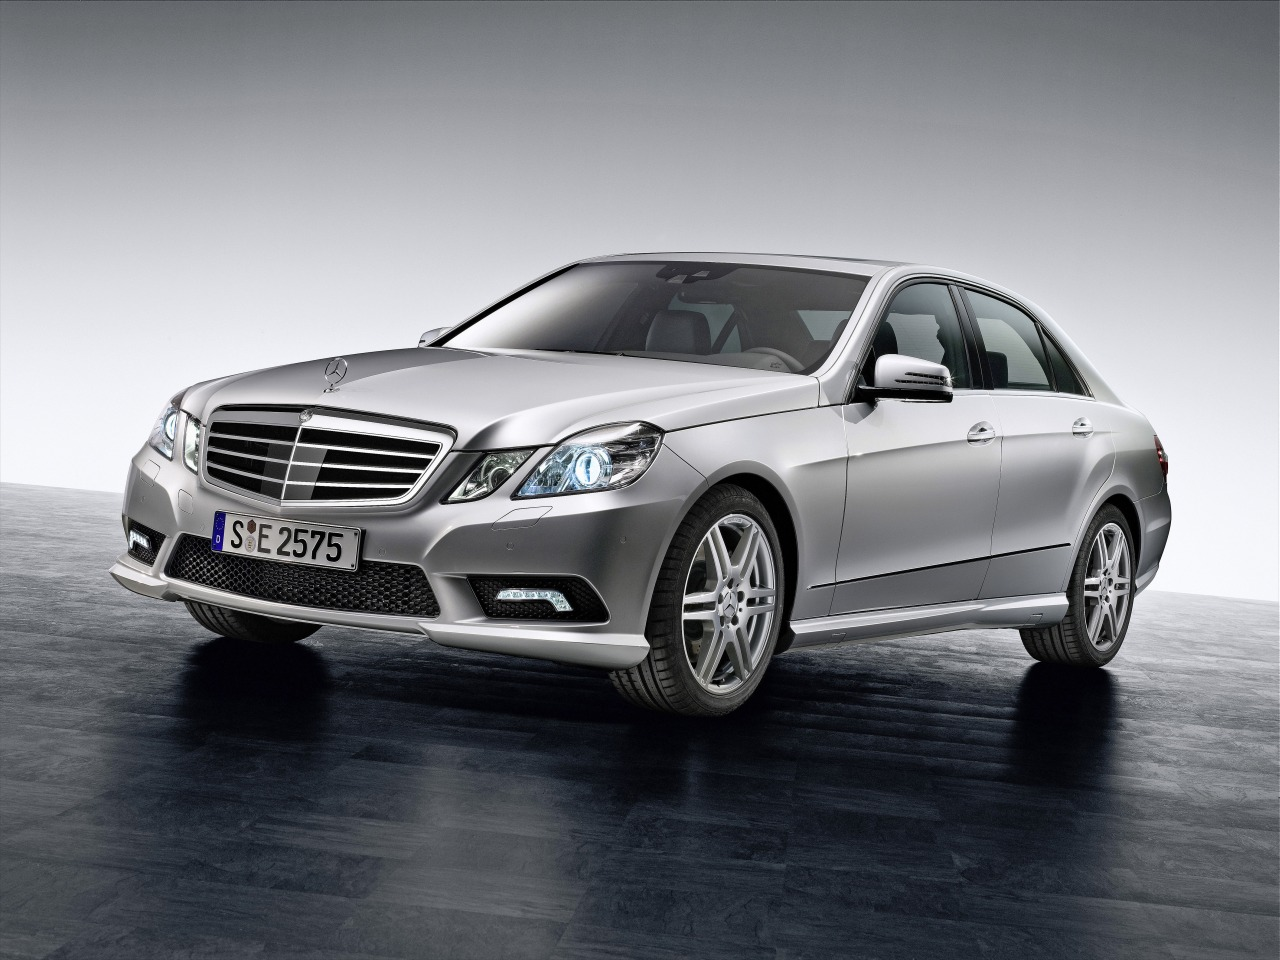 2011 2012 mercedes benz e class price in india for Price for mercedes benz